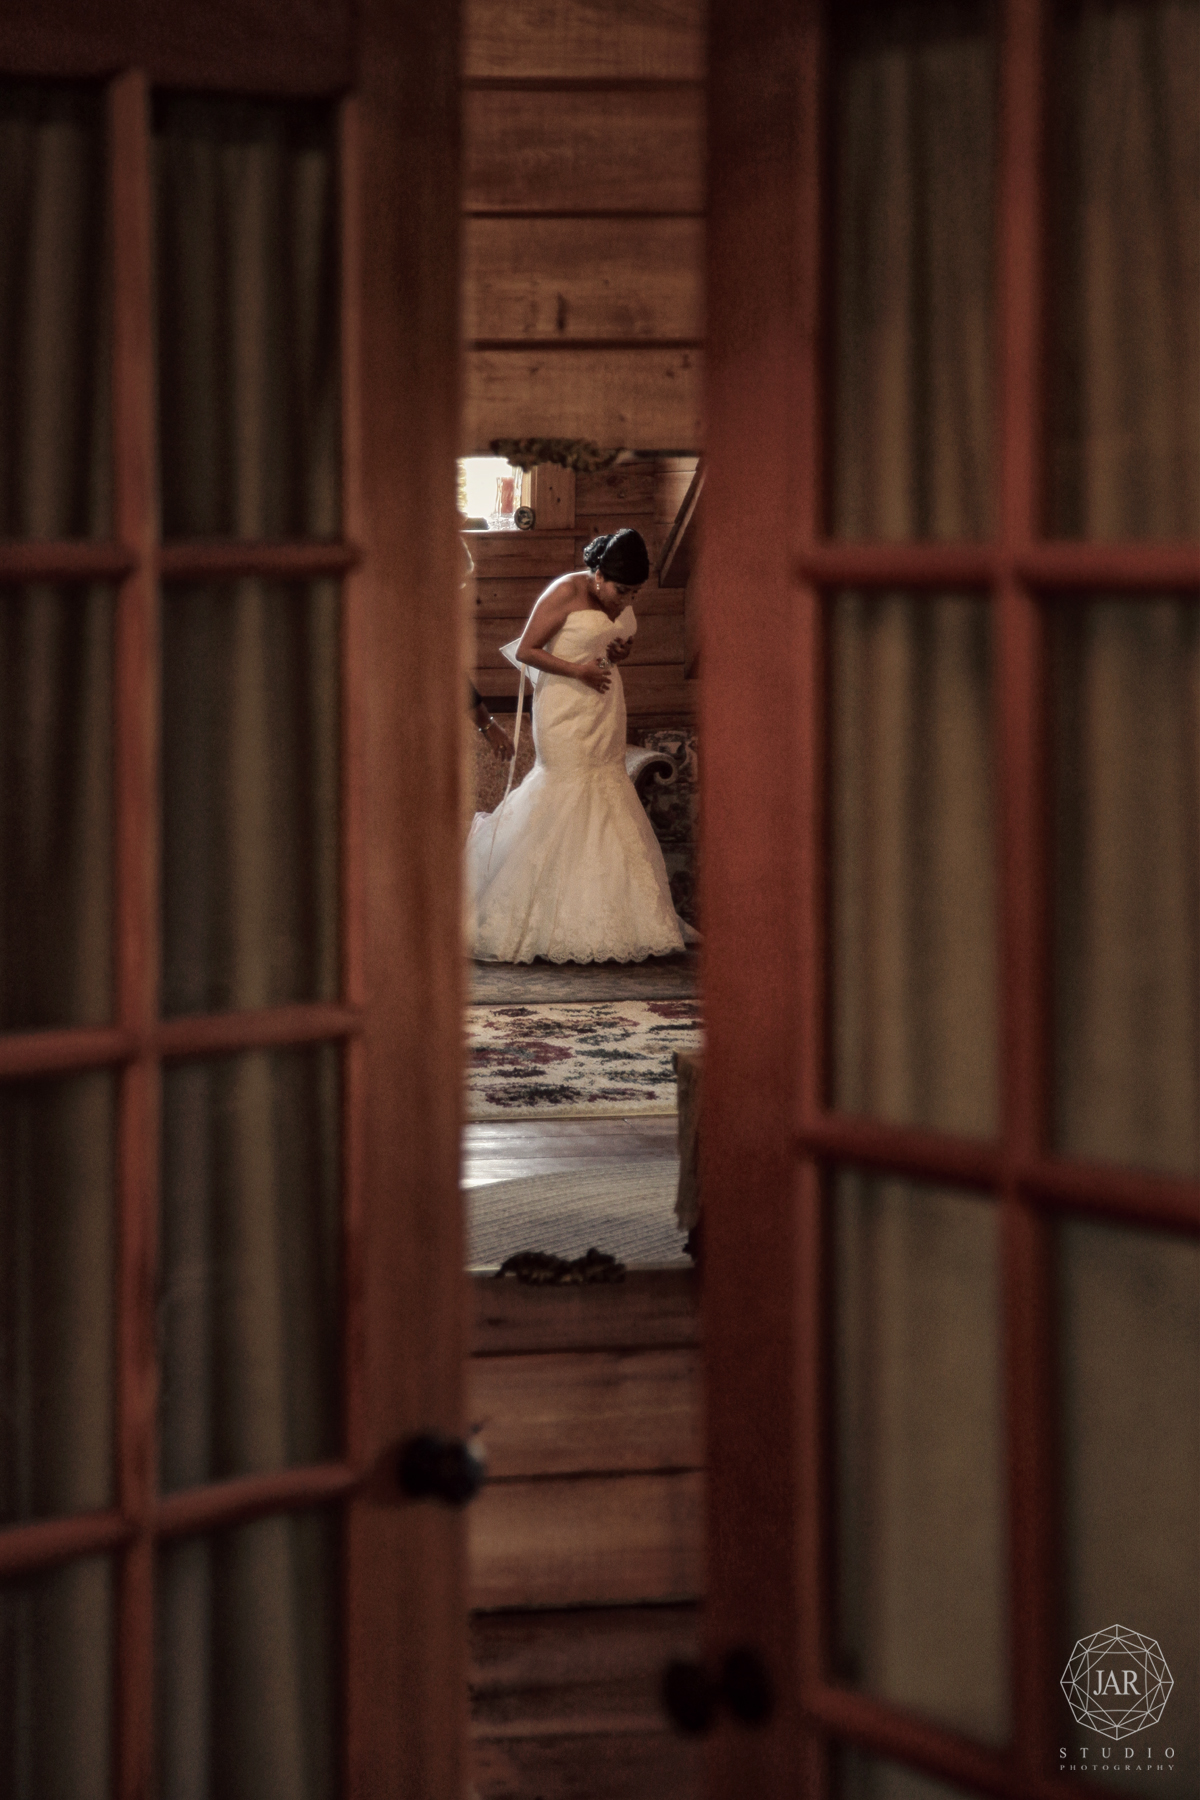 07-bride-getting-dress-gorgeous-intimate-isola-farms-jarstudio.jpg